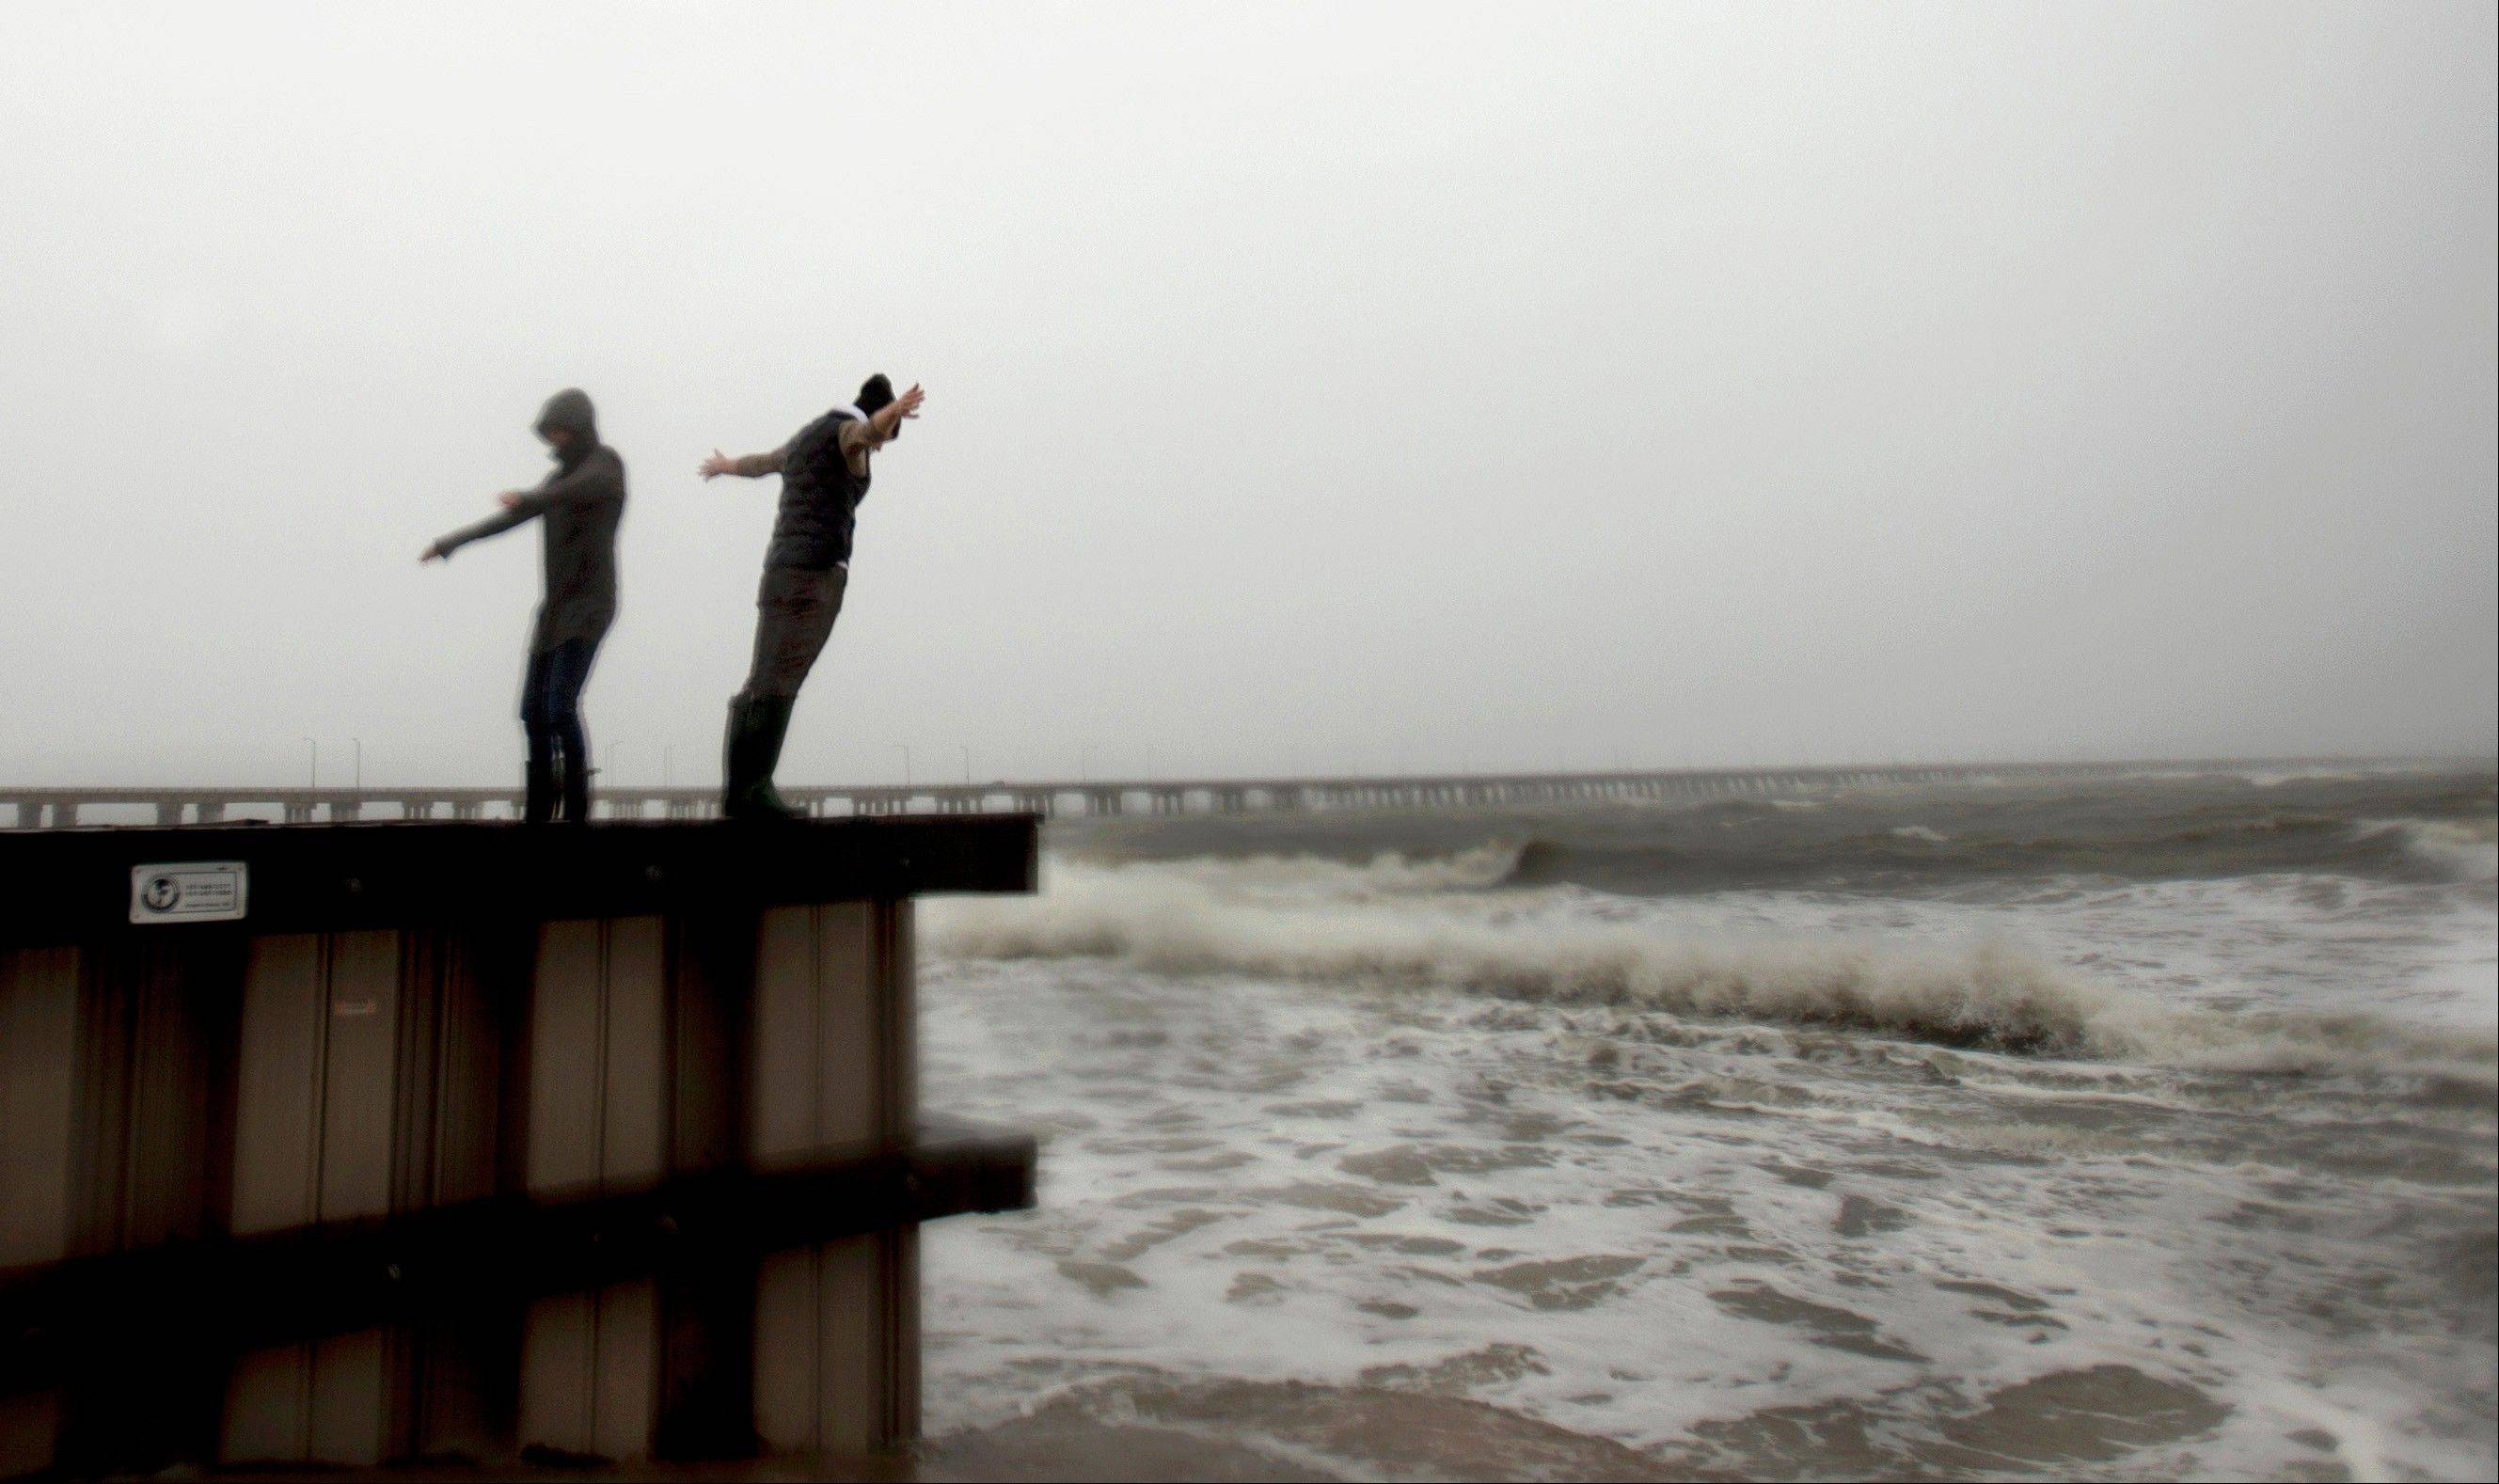 Jessica Ospina, left, and Allison Kane of Virginia Beach, Va., lean into the strong wind and rain off the Chesapeake Bay near the Chesapeake Bay Bridge tunnel in Virginia Beach, as Hurricane Sandy works its way north, battering the U.S. East Coast.